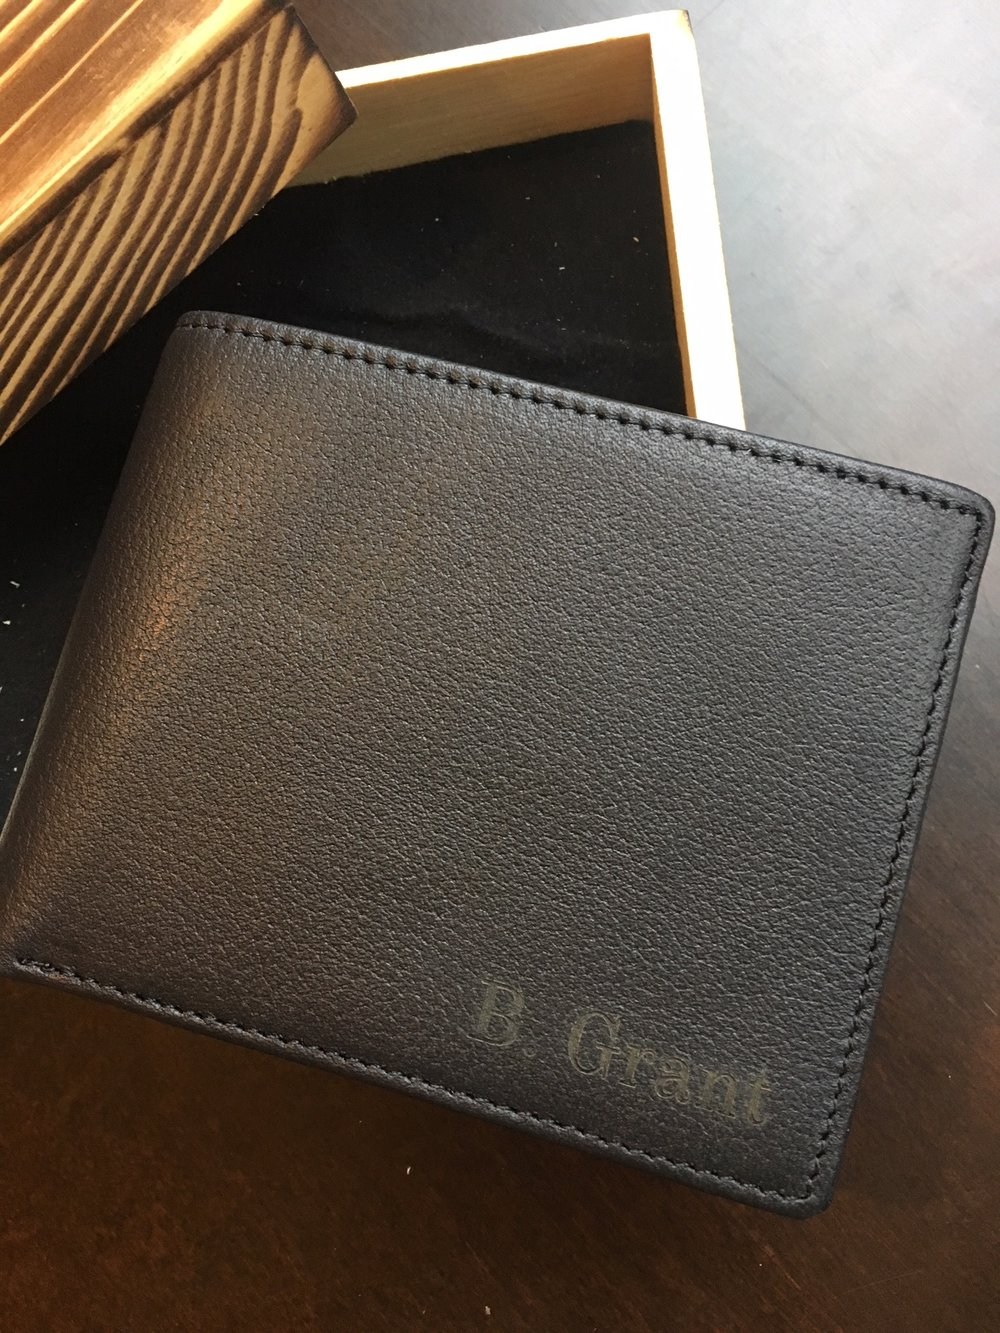 Engraved-customized-wallet